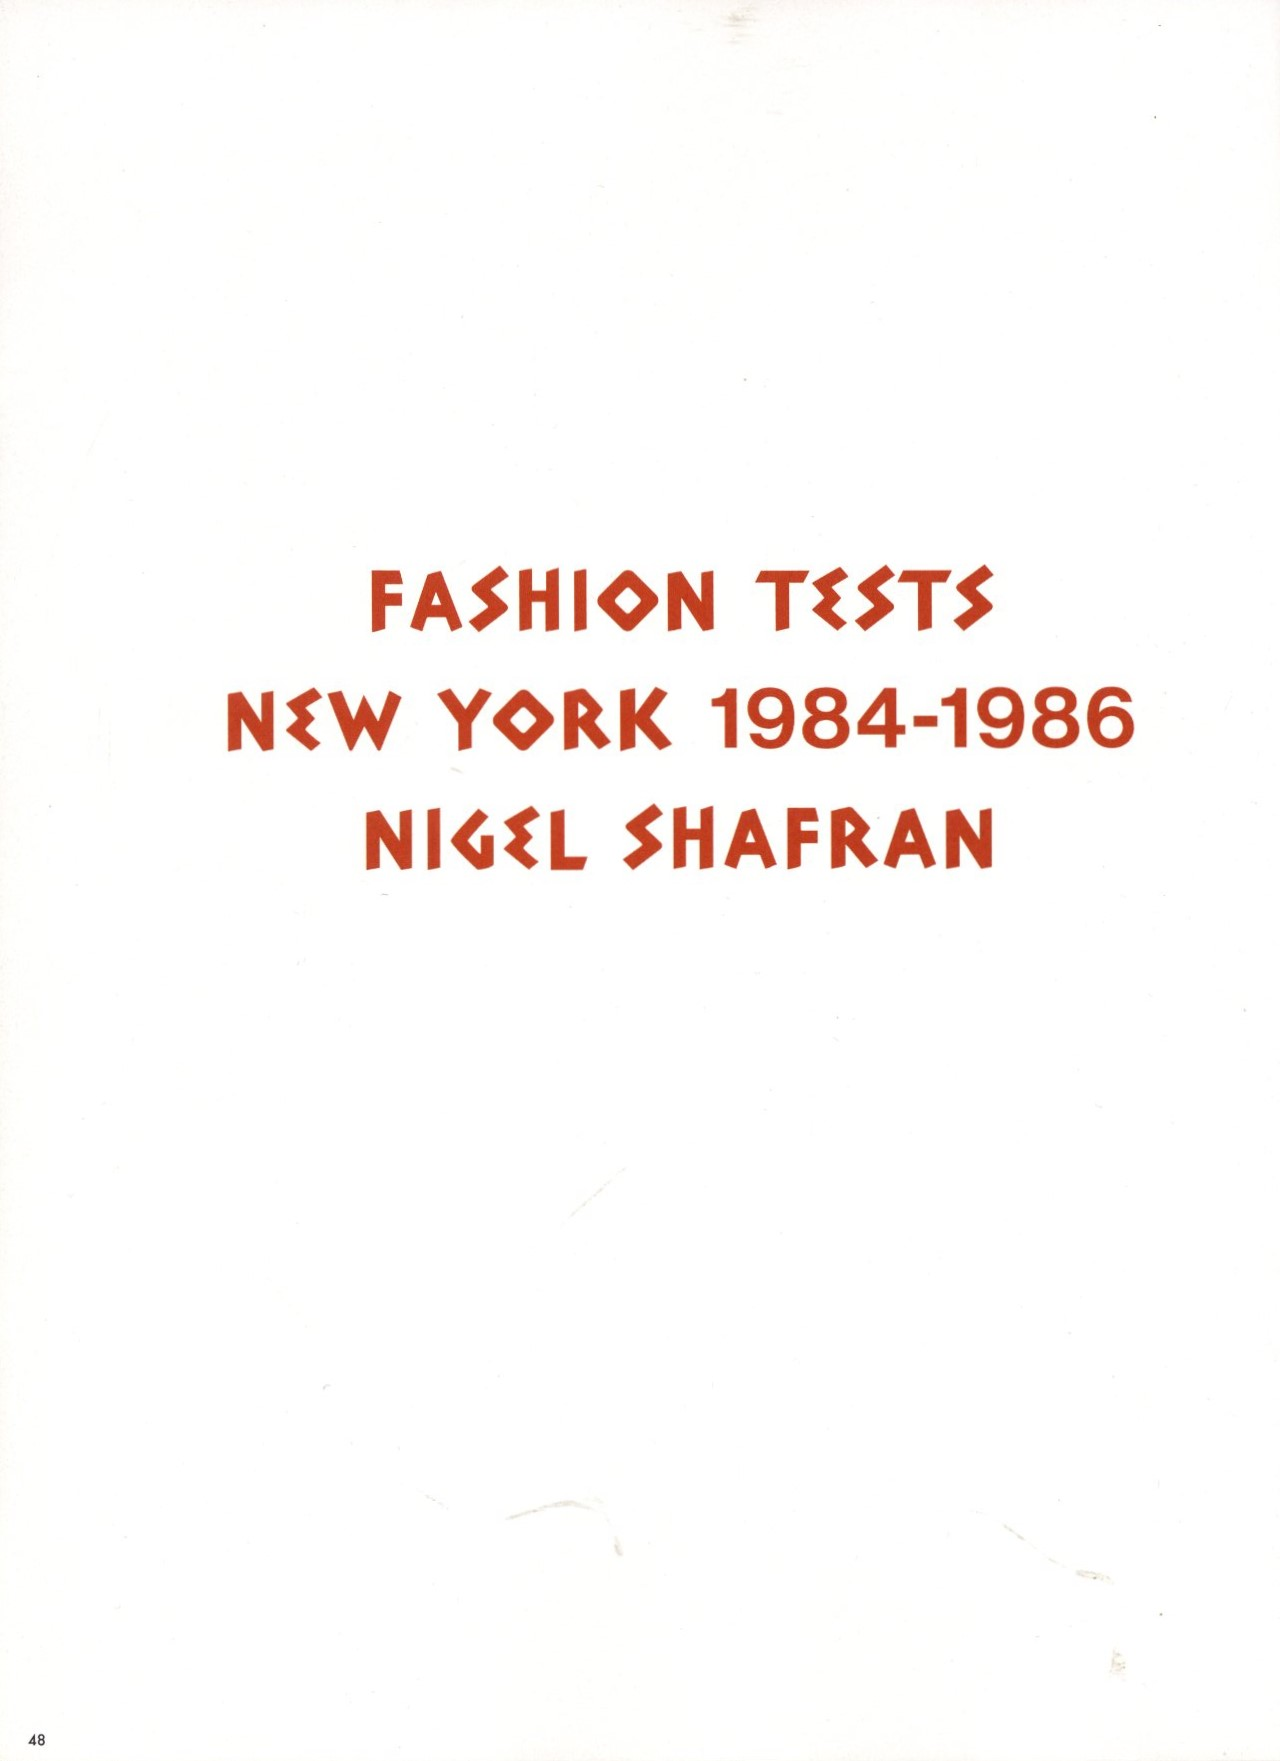 photography nigel shafran fashion tests new york 1984 1986 reedition aw 2016